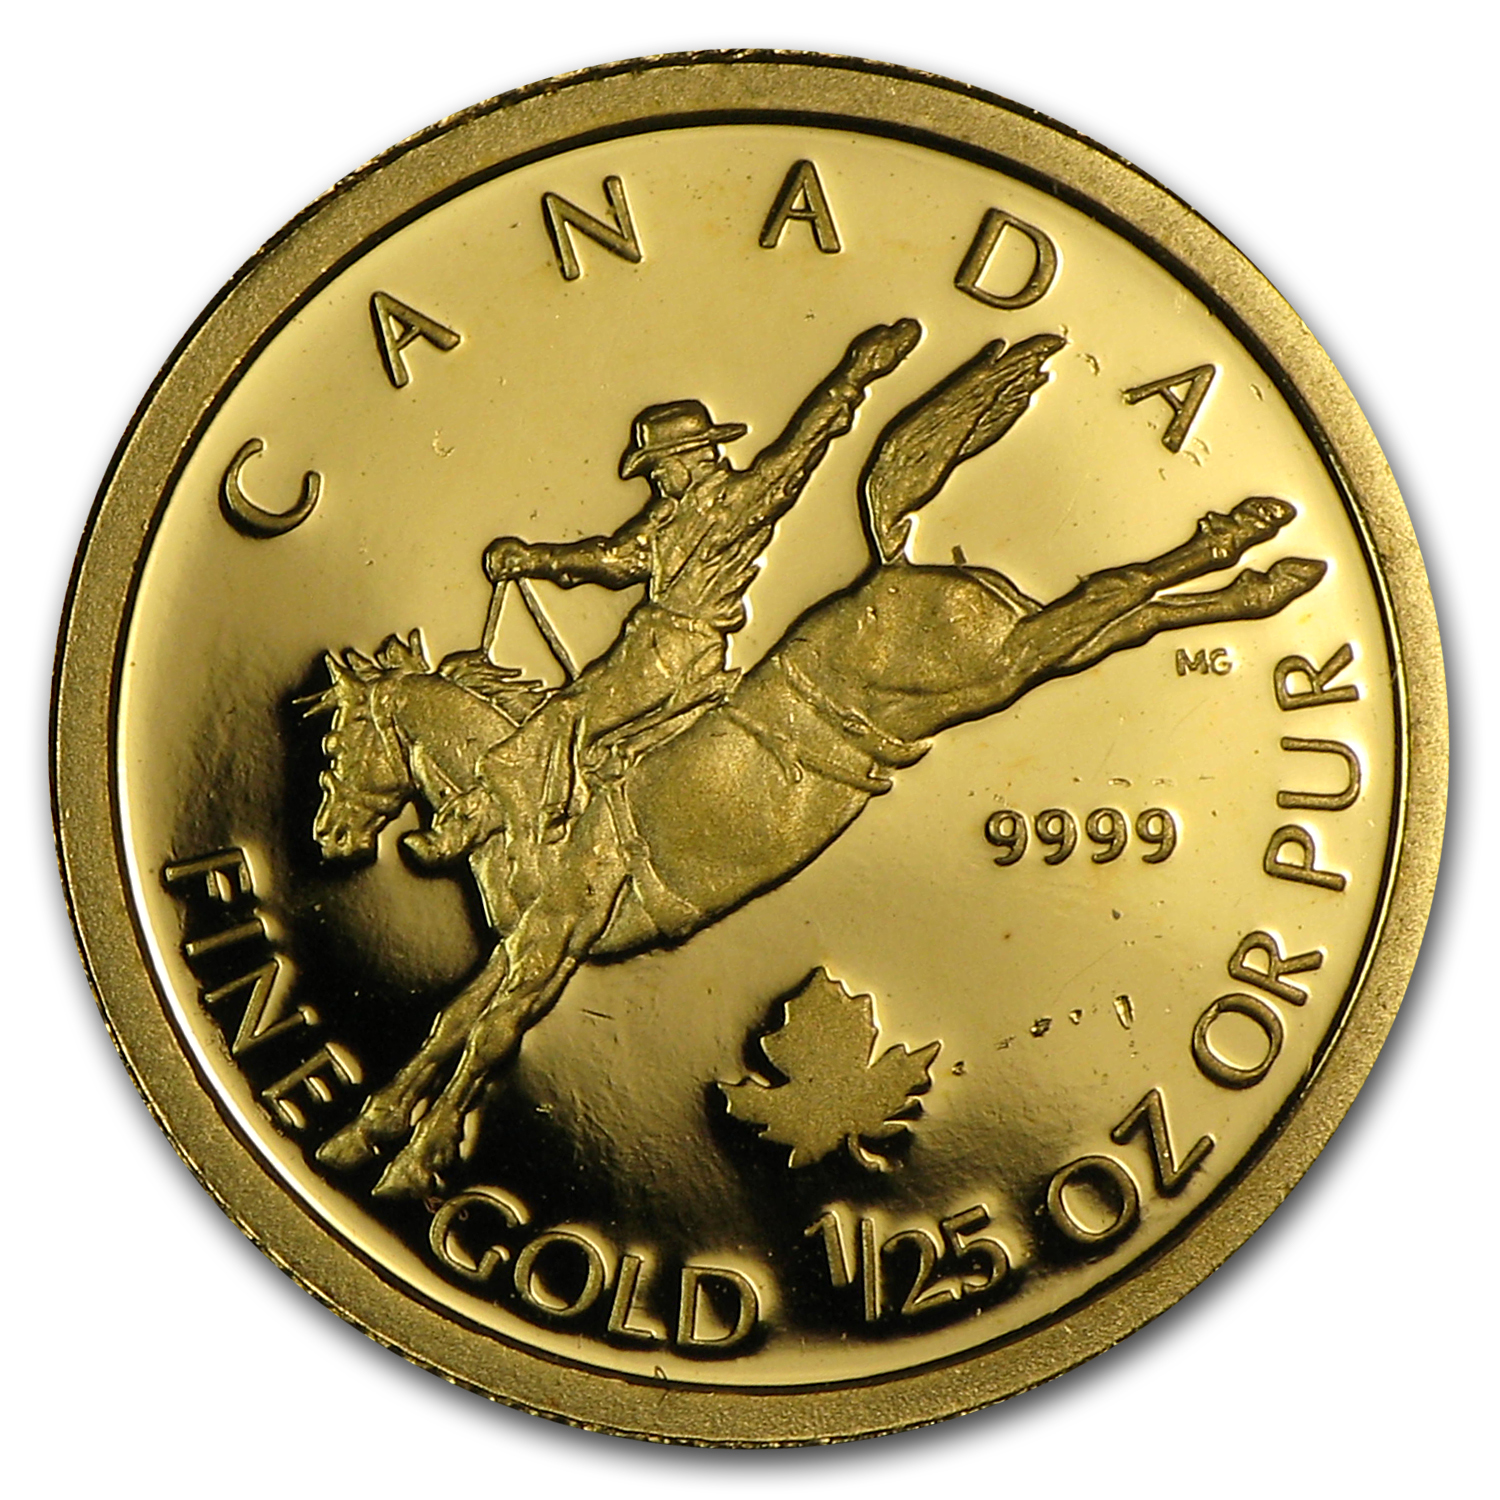 2006 1/25 oz Gold Canadian $0.50 Proof - Calgary Stampede